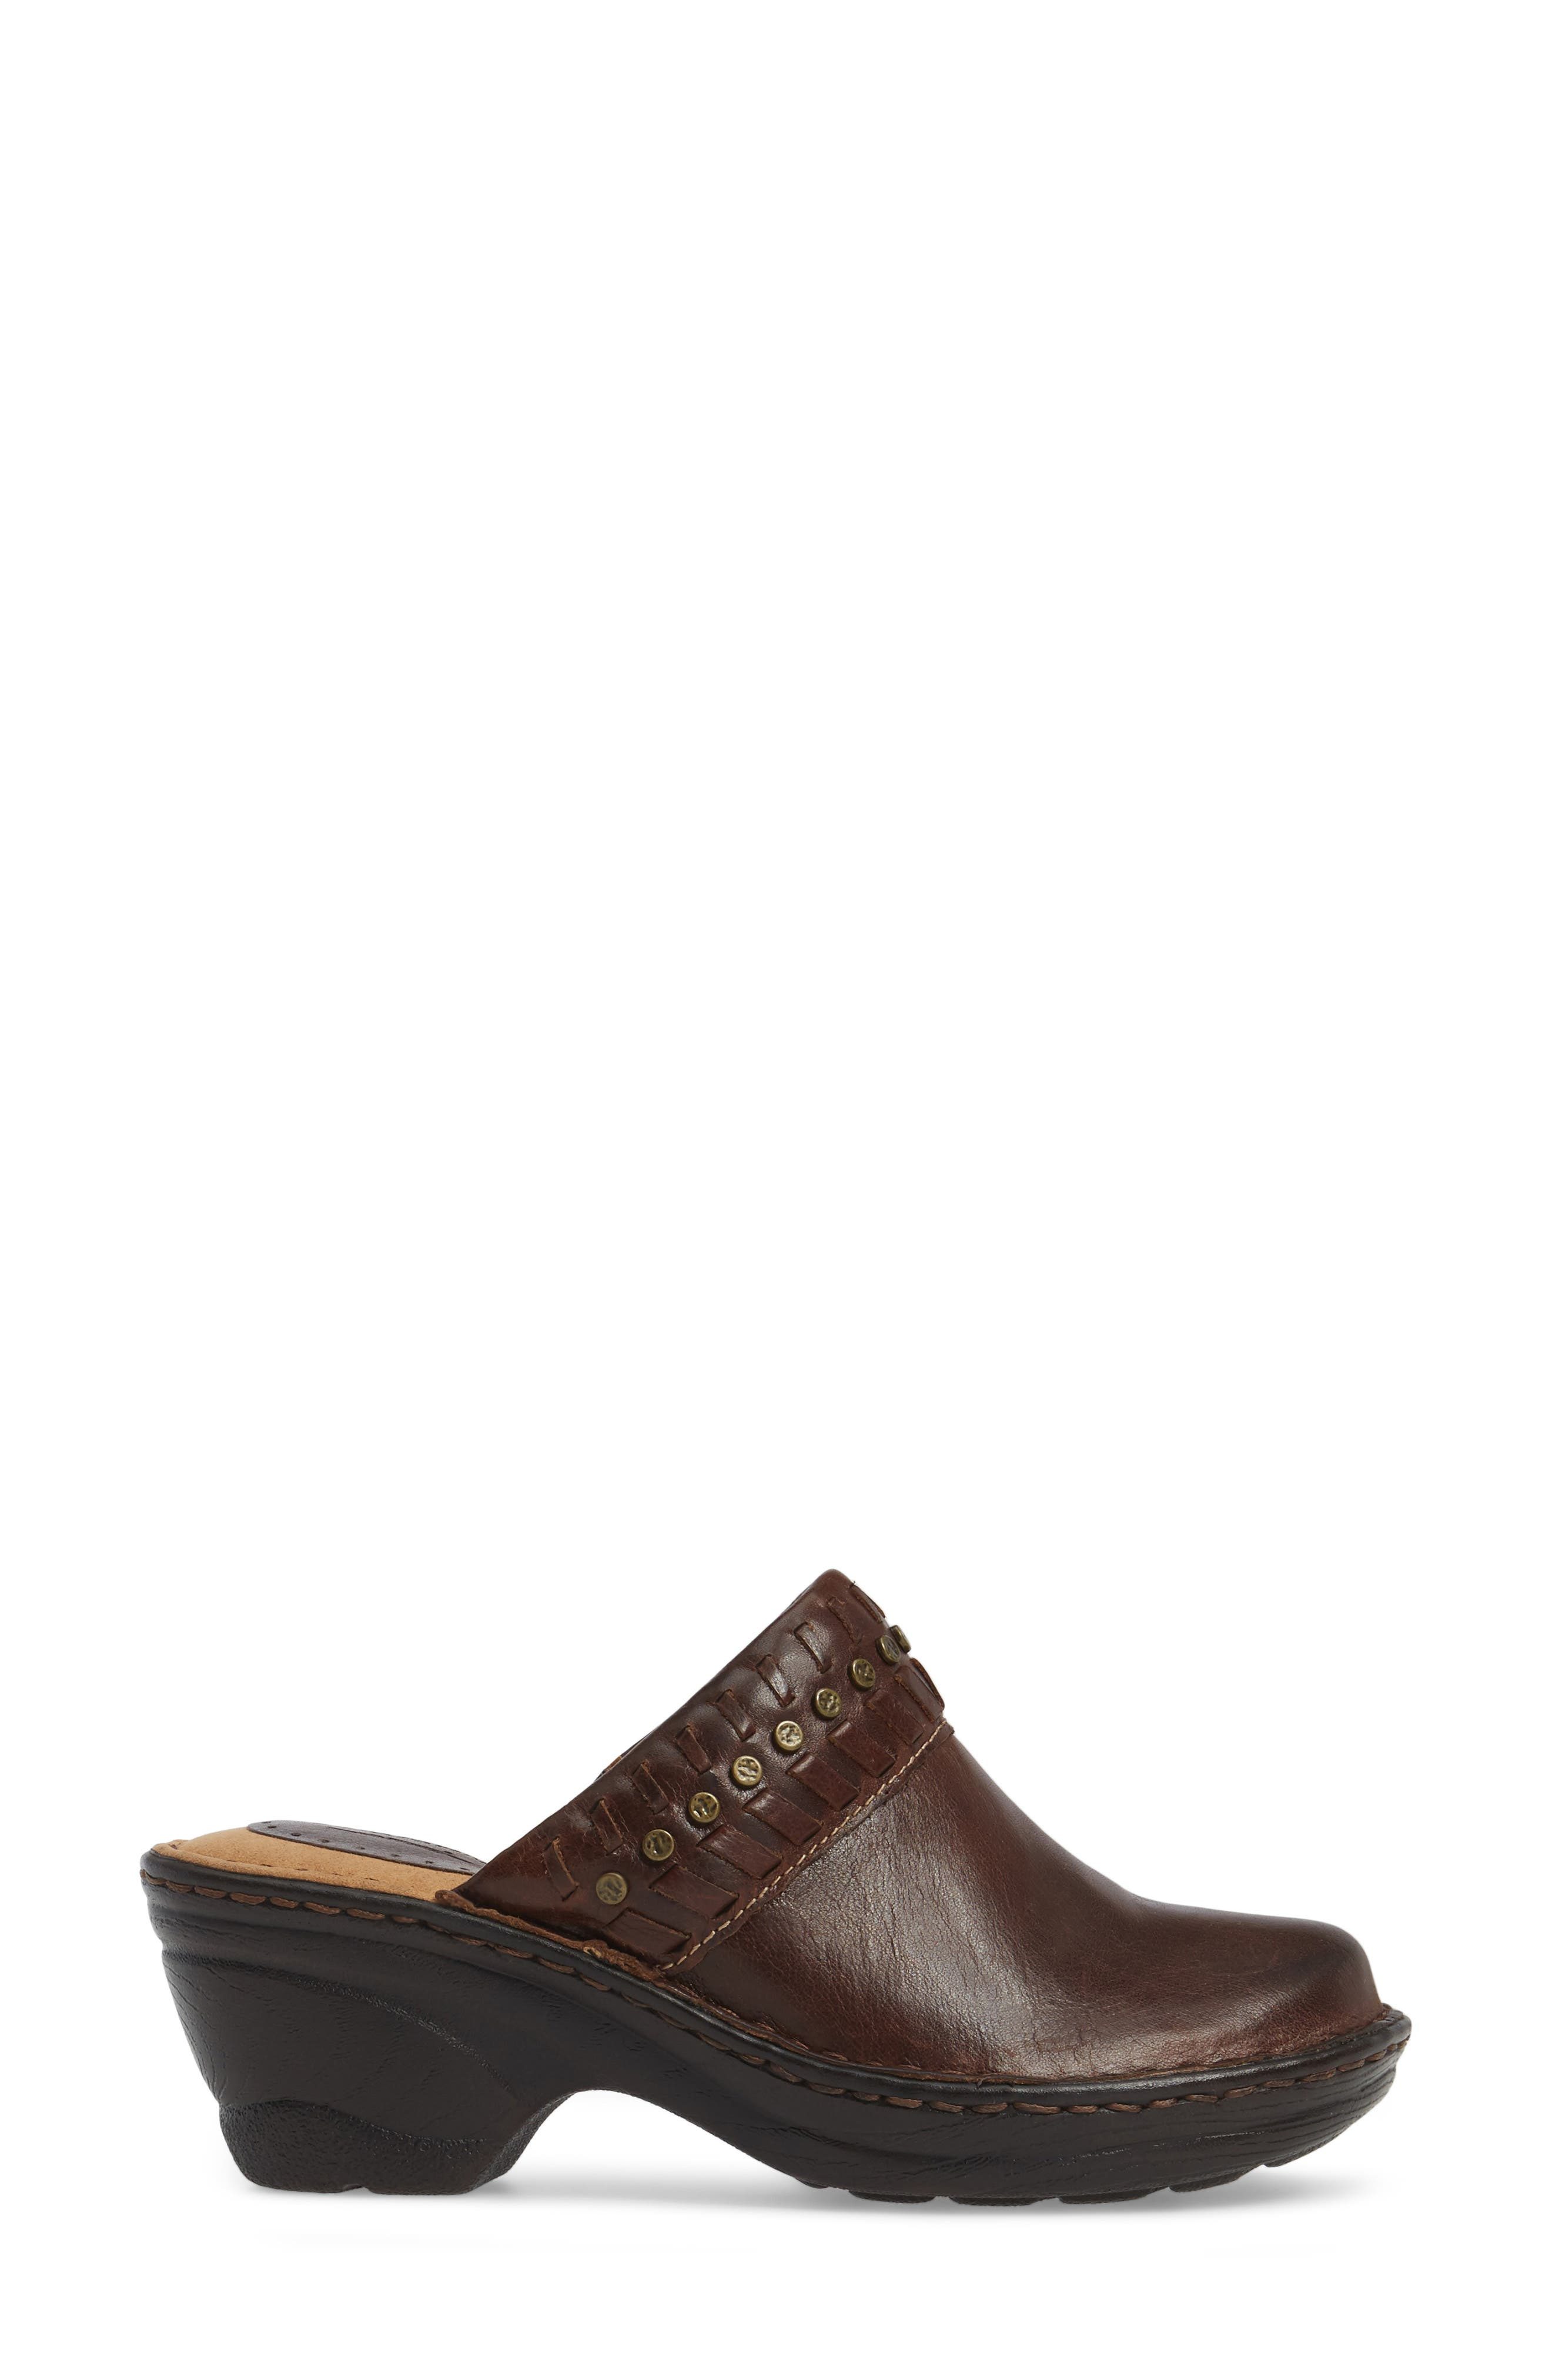 Lorain Clog,                             Alternate thumbnail 3, color,                             Bridle Brown Leather